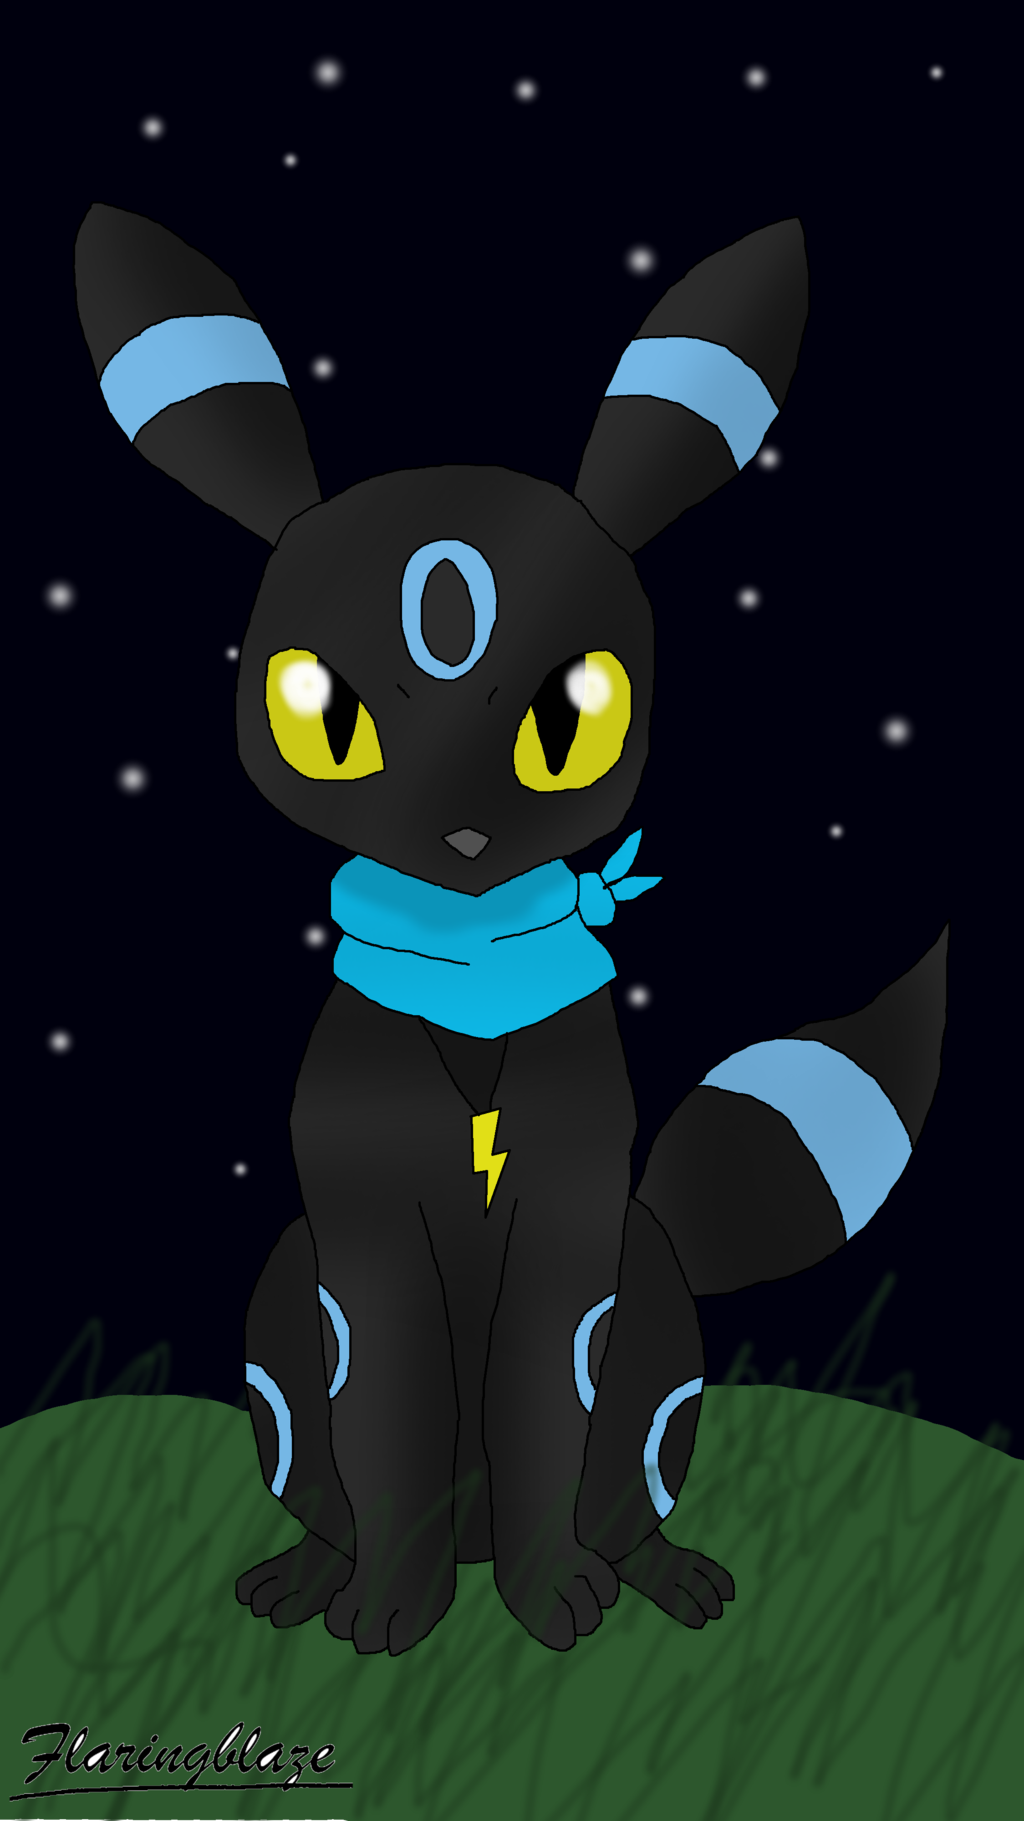 Shiny Umbreon Wallpaper Shiny umbreon in the stars 1024x1821